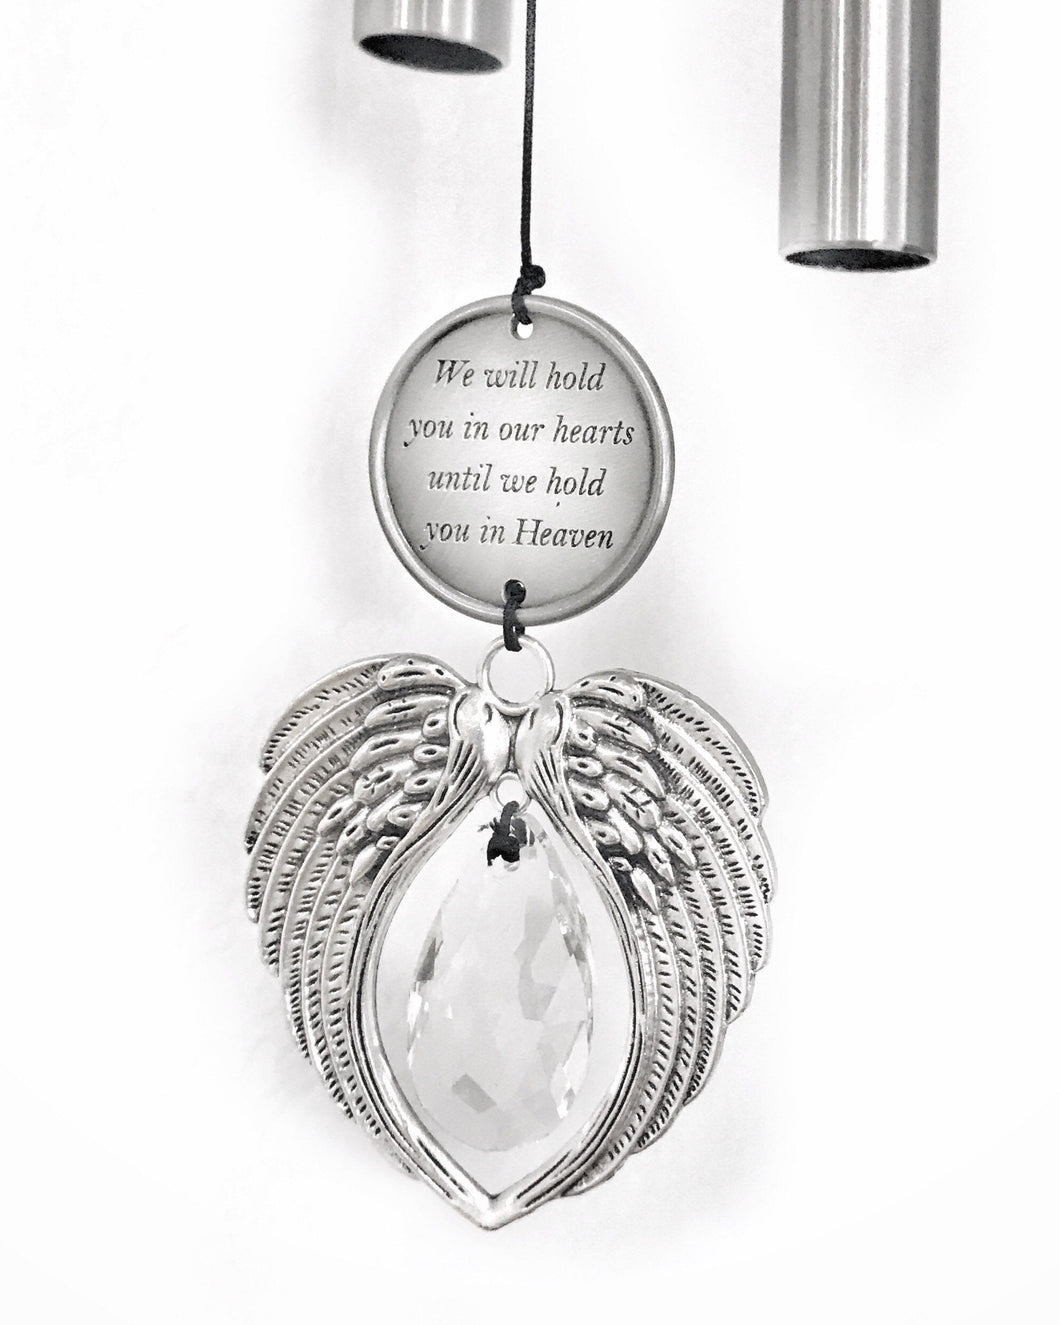 Memorial Prism Angel Wind Chime Sun Catcher Gift Direct Shipping Sympathy Gift Teardrop Prisms